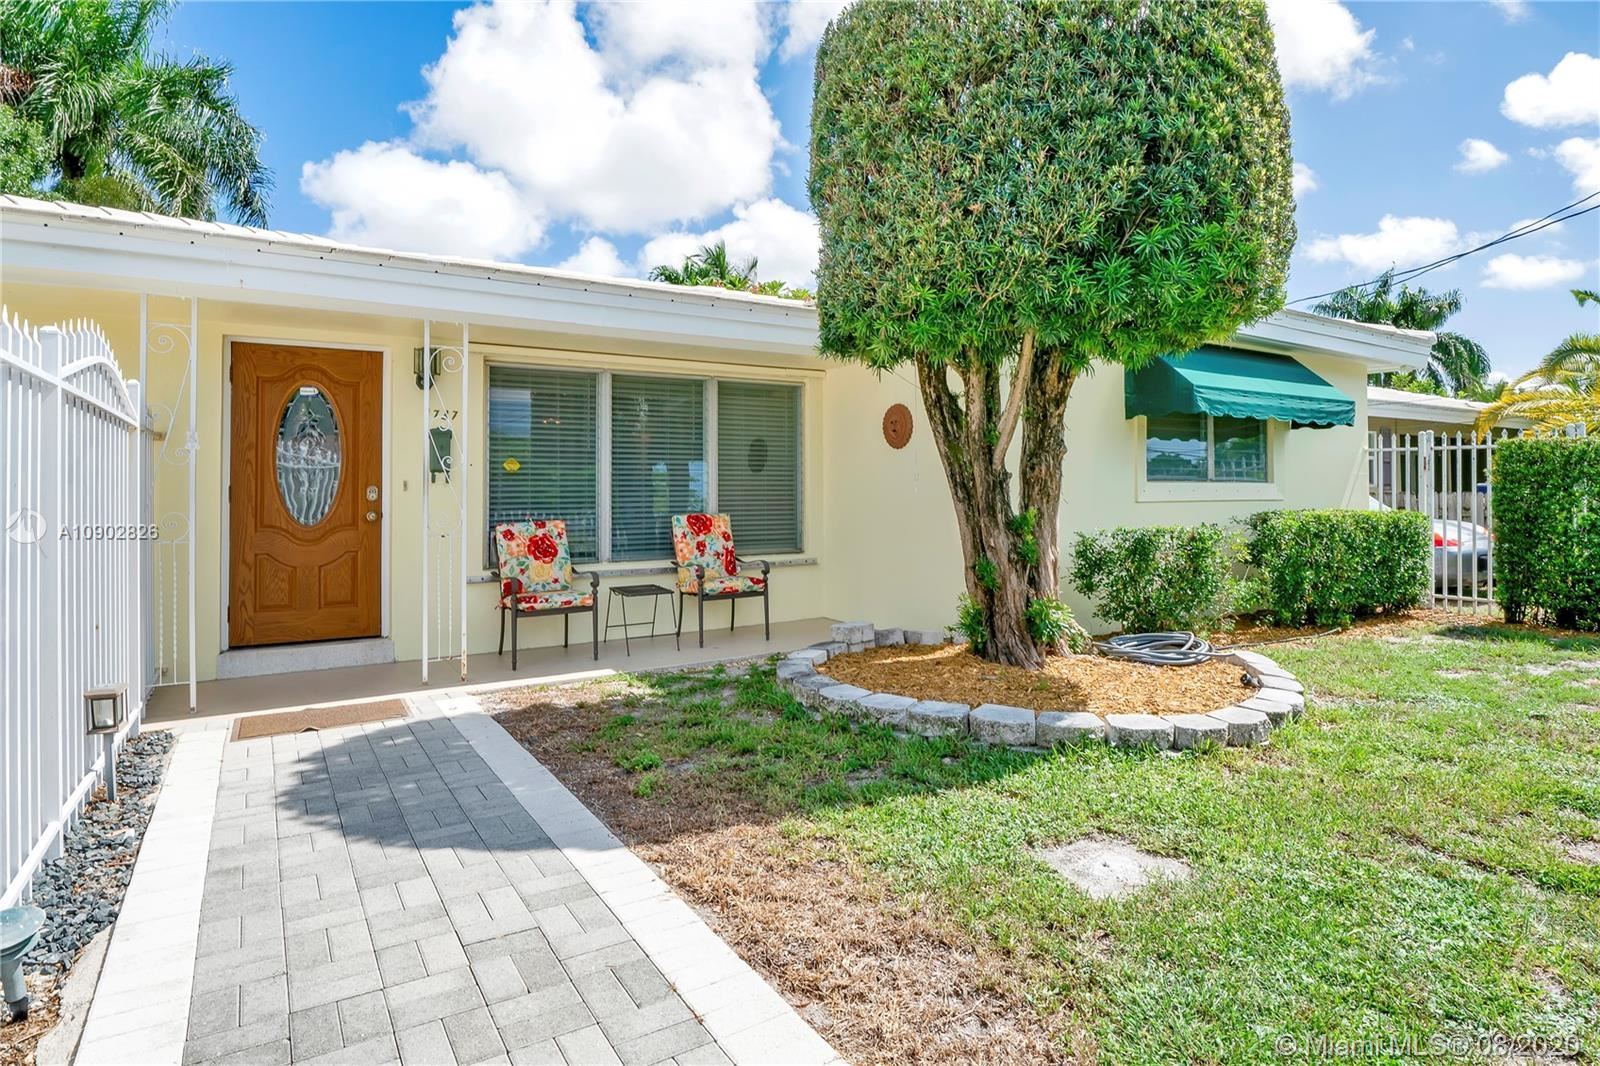 1737 SW 4th St, Fort Lauderdale, FL 33312 - #: A10902826